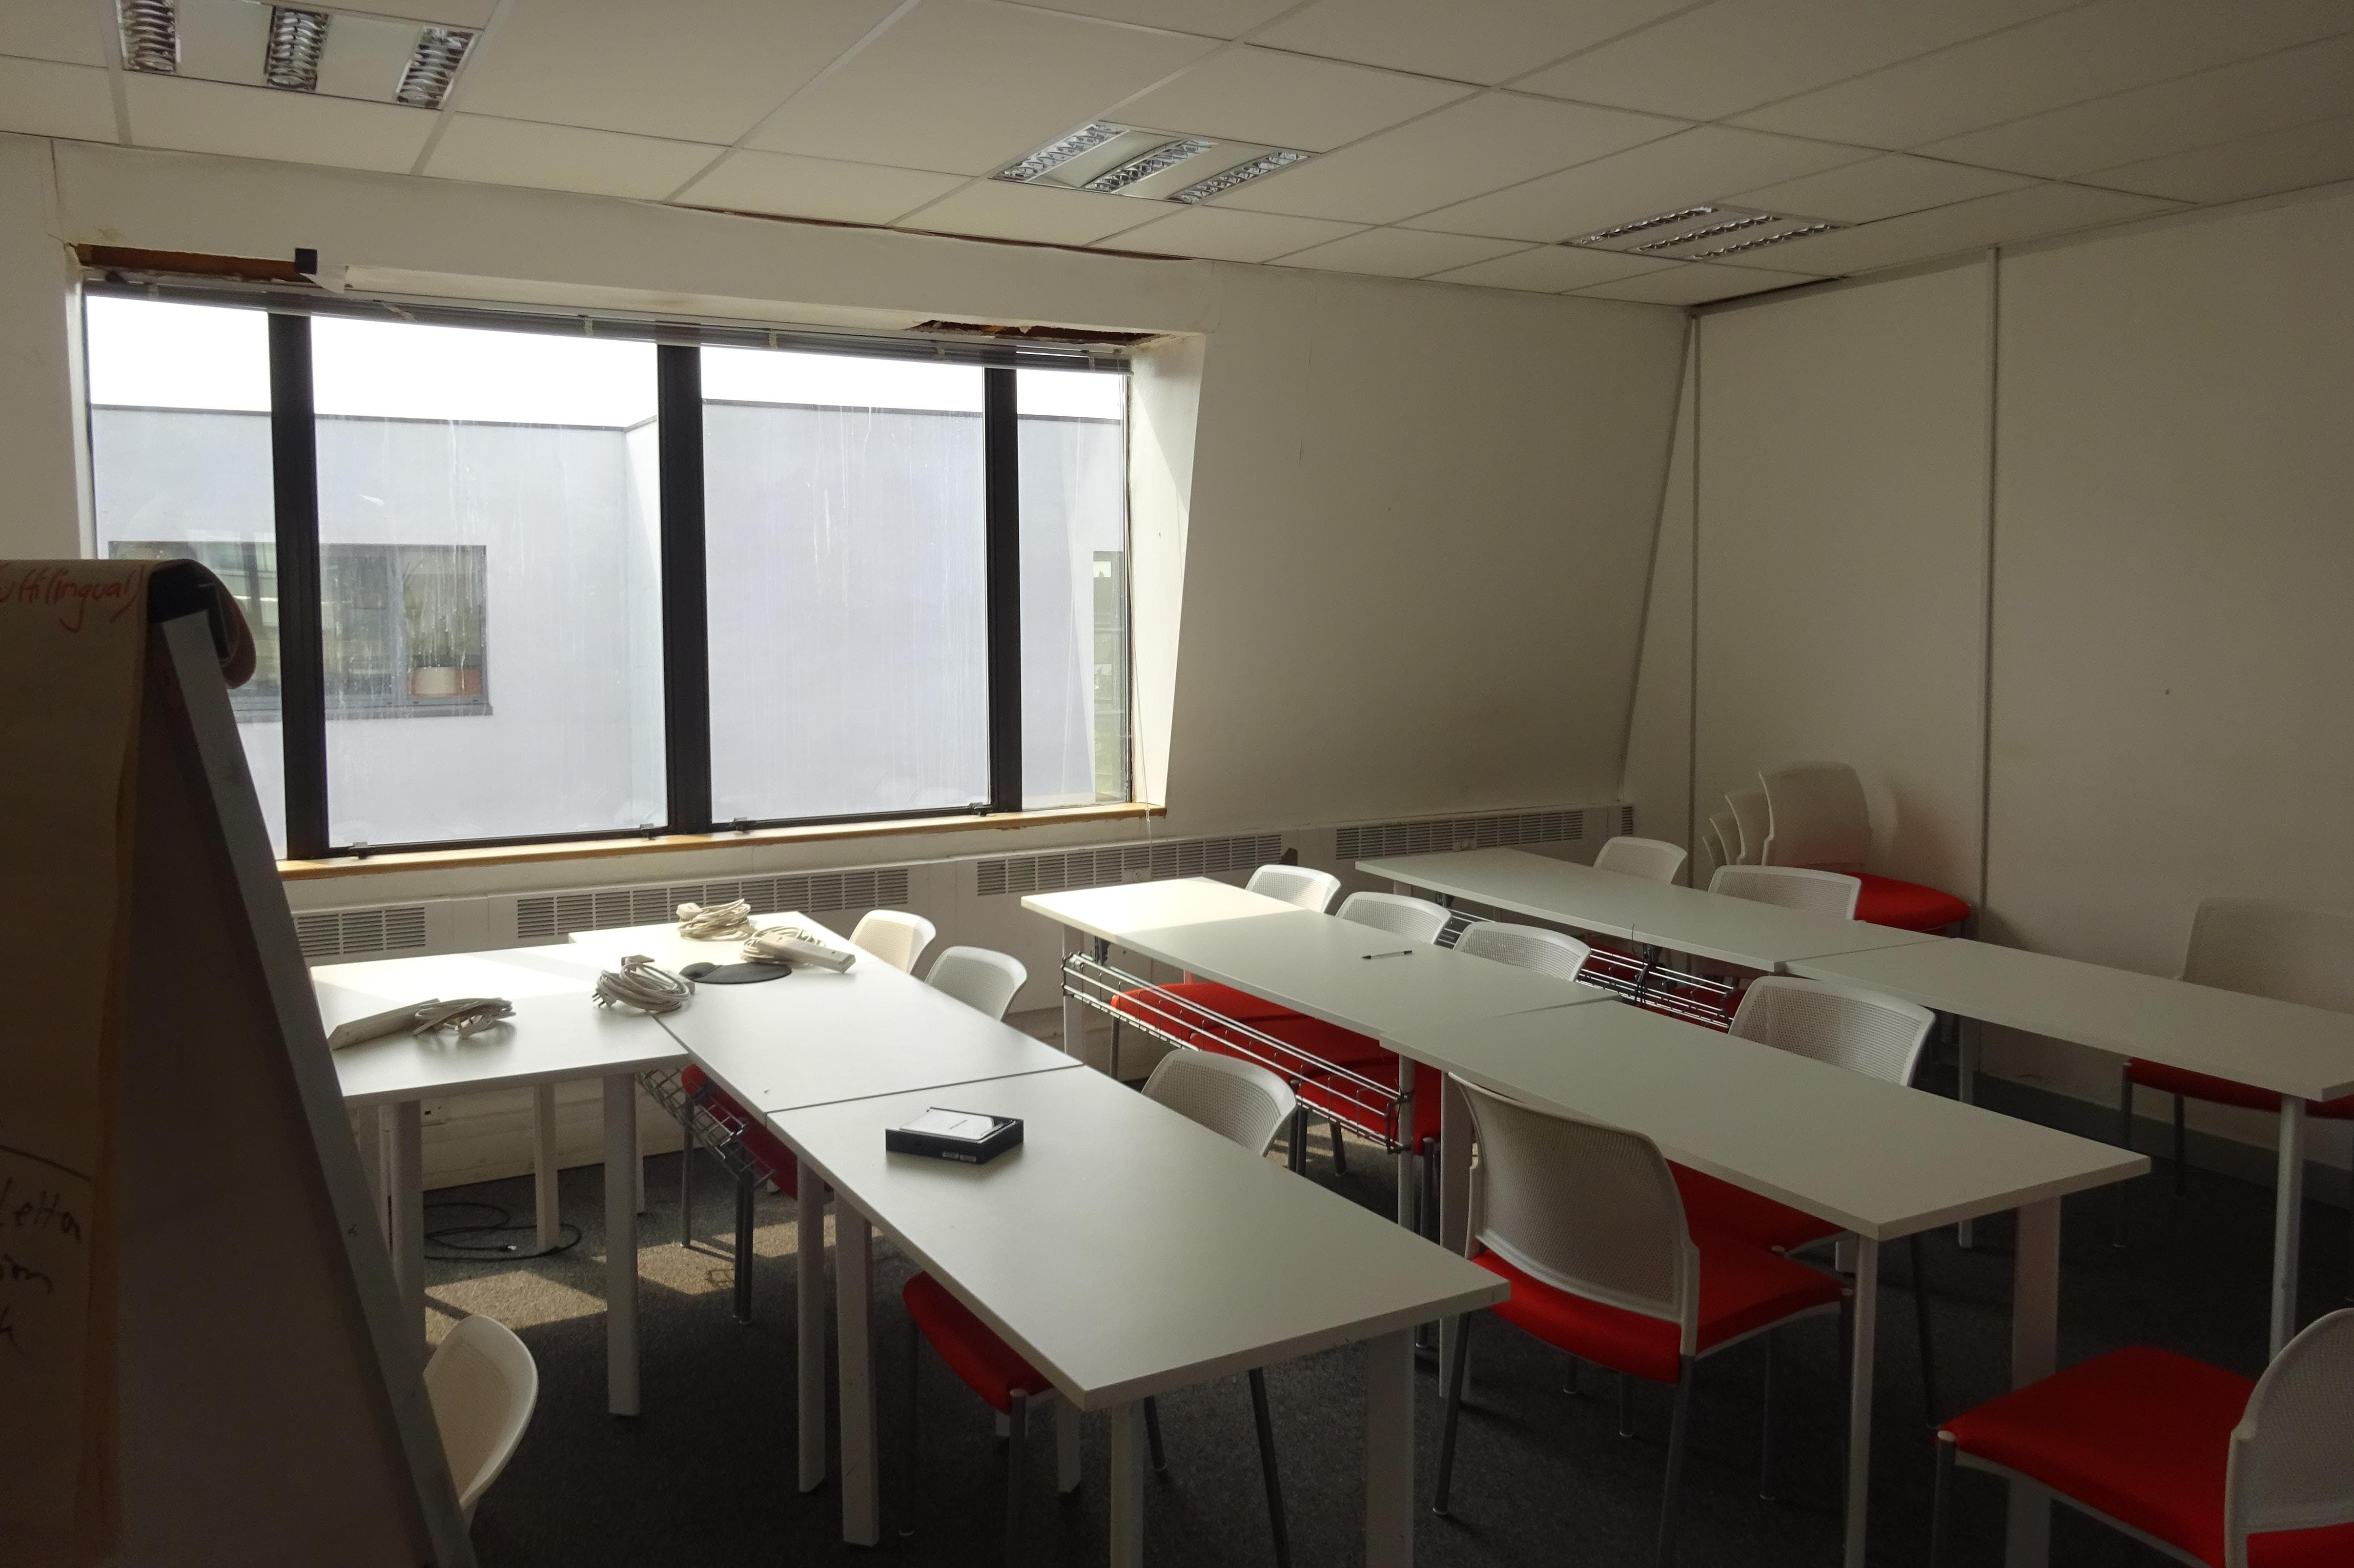 Queens Court, 9-17 Eastern Road, Romford, Offices To Let - Romford_Office_Space_To_Let.JPG